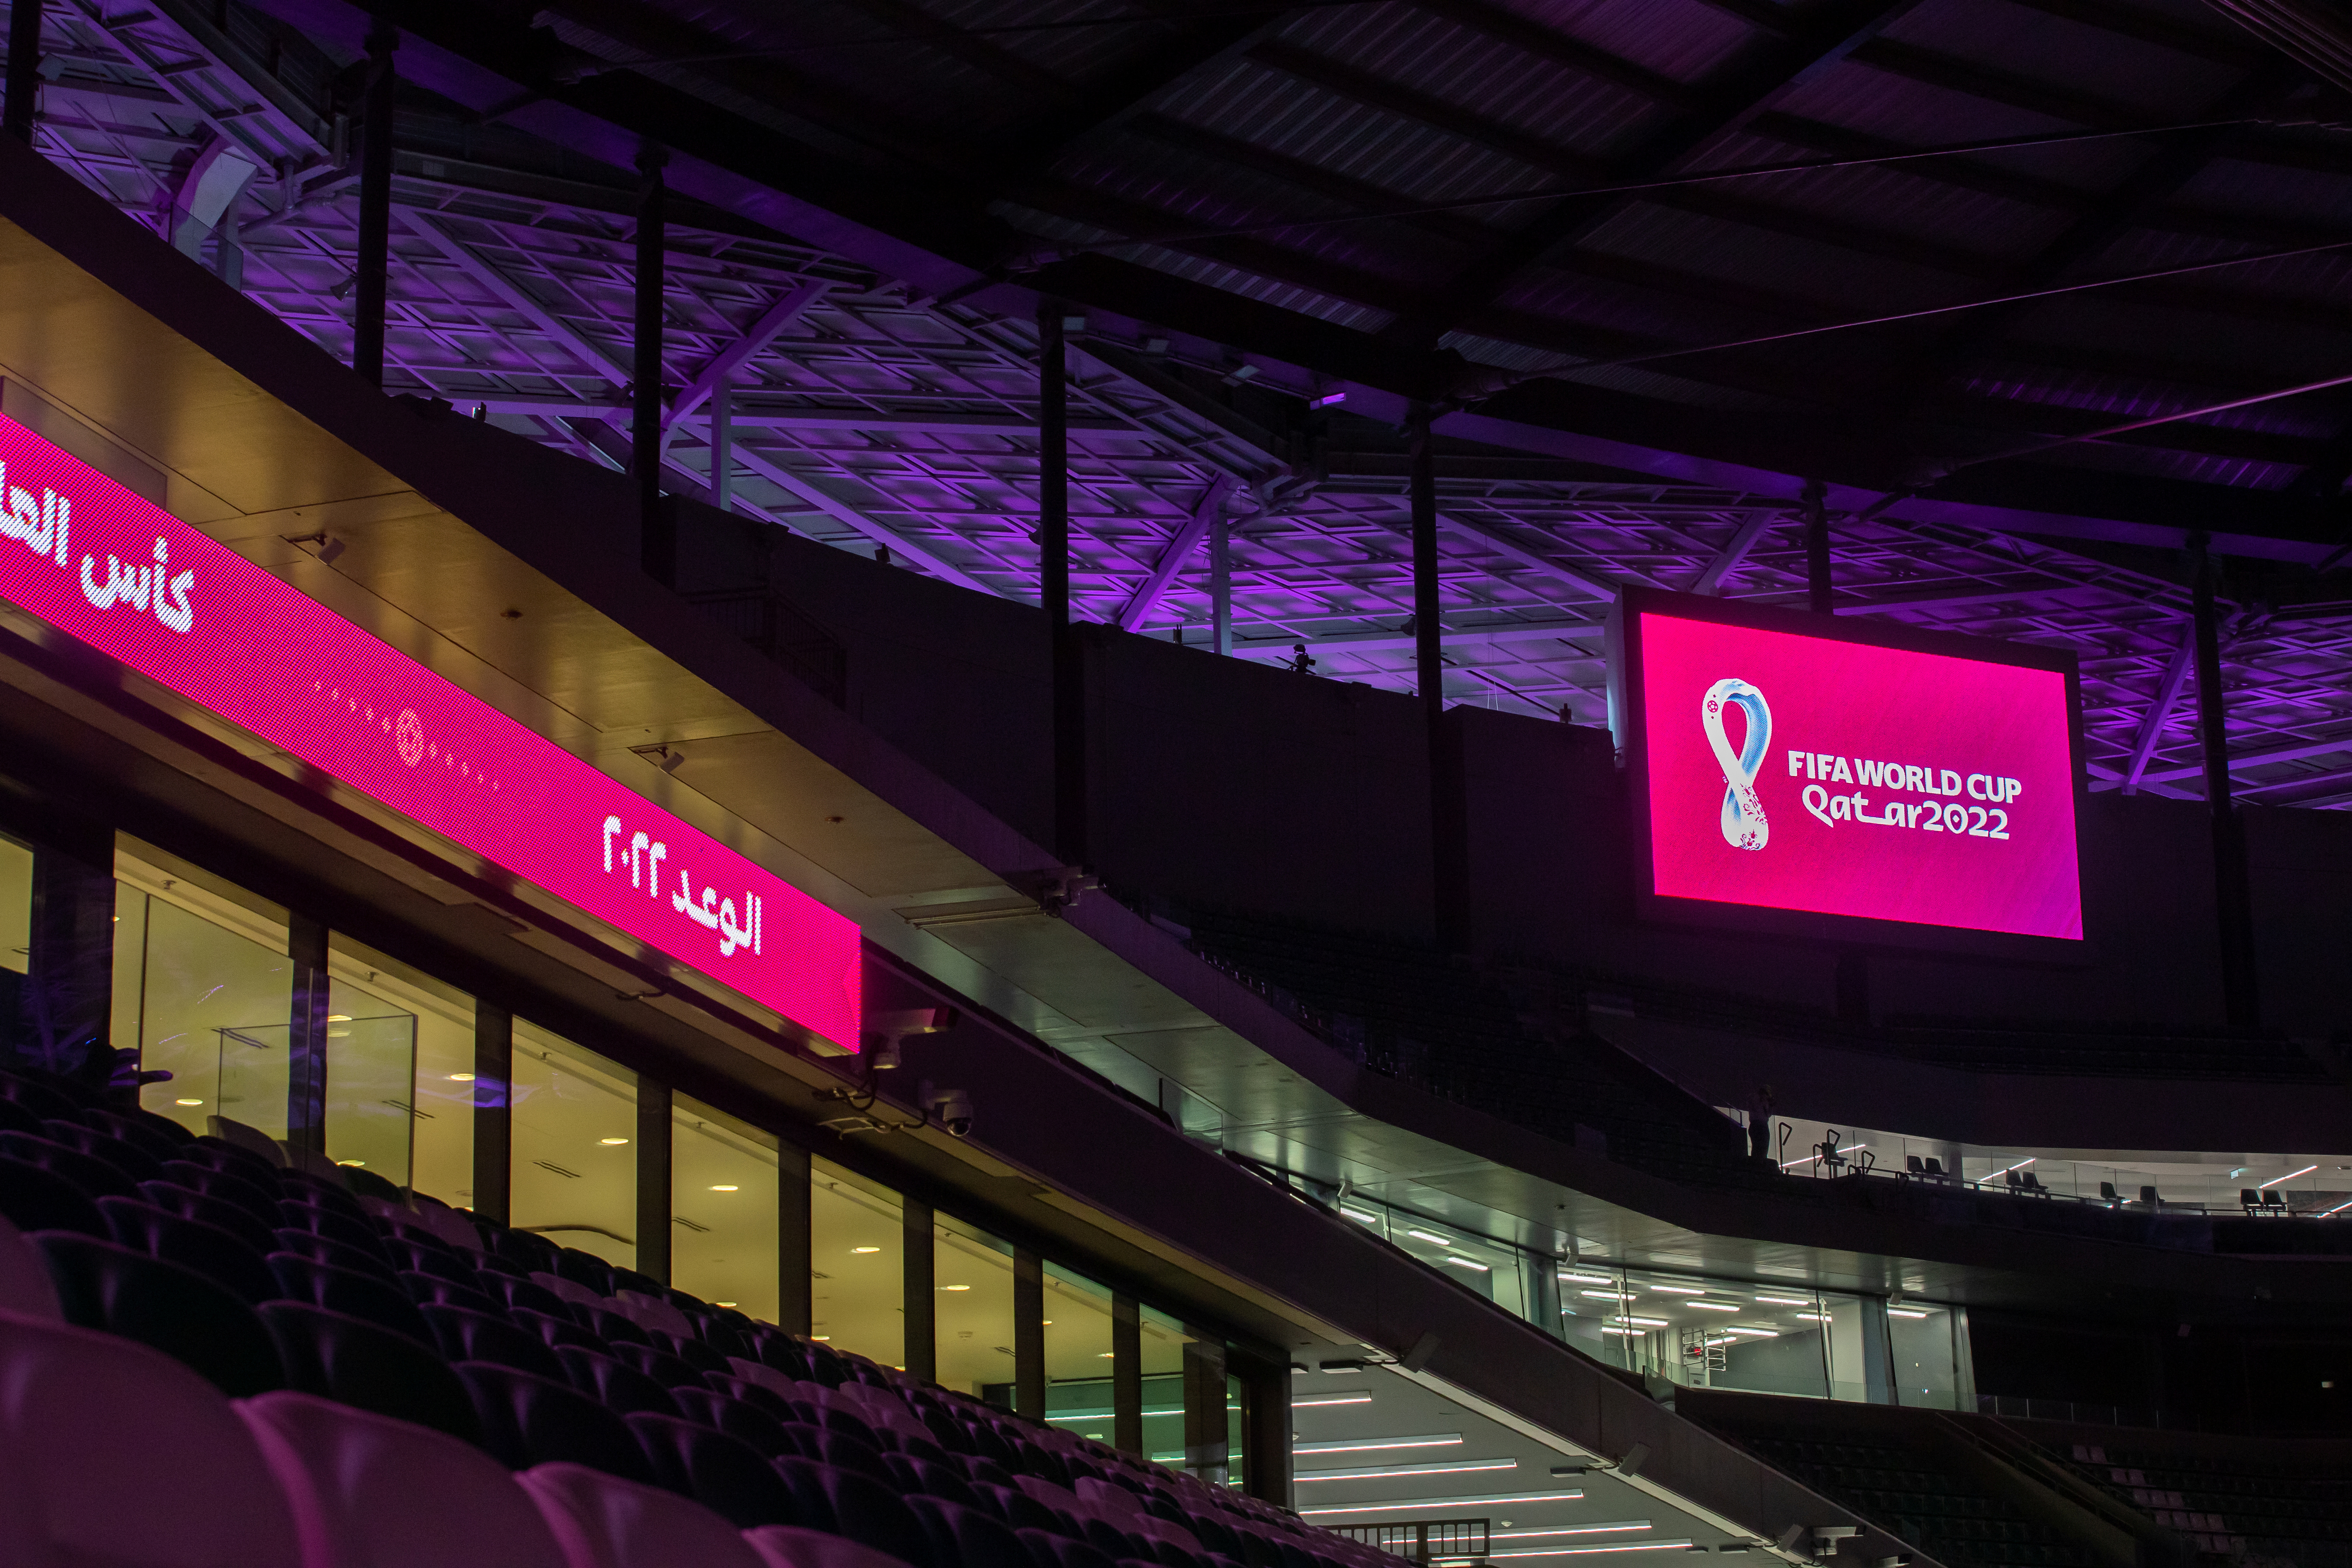 Soccer Football - Education City Stadium general views, Al Rayyan, Qatar - June 15, 2020.  General view inside the Education City Stadium, which was recently completed for the 2022 FIFA World Cup  Qatar's Supreme Committee for Delivery & Legacy/Handout via REUTERS